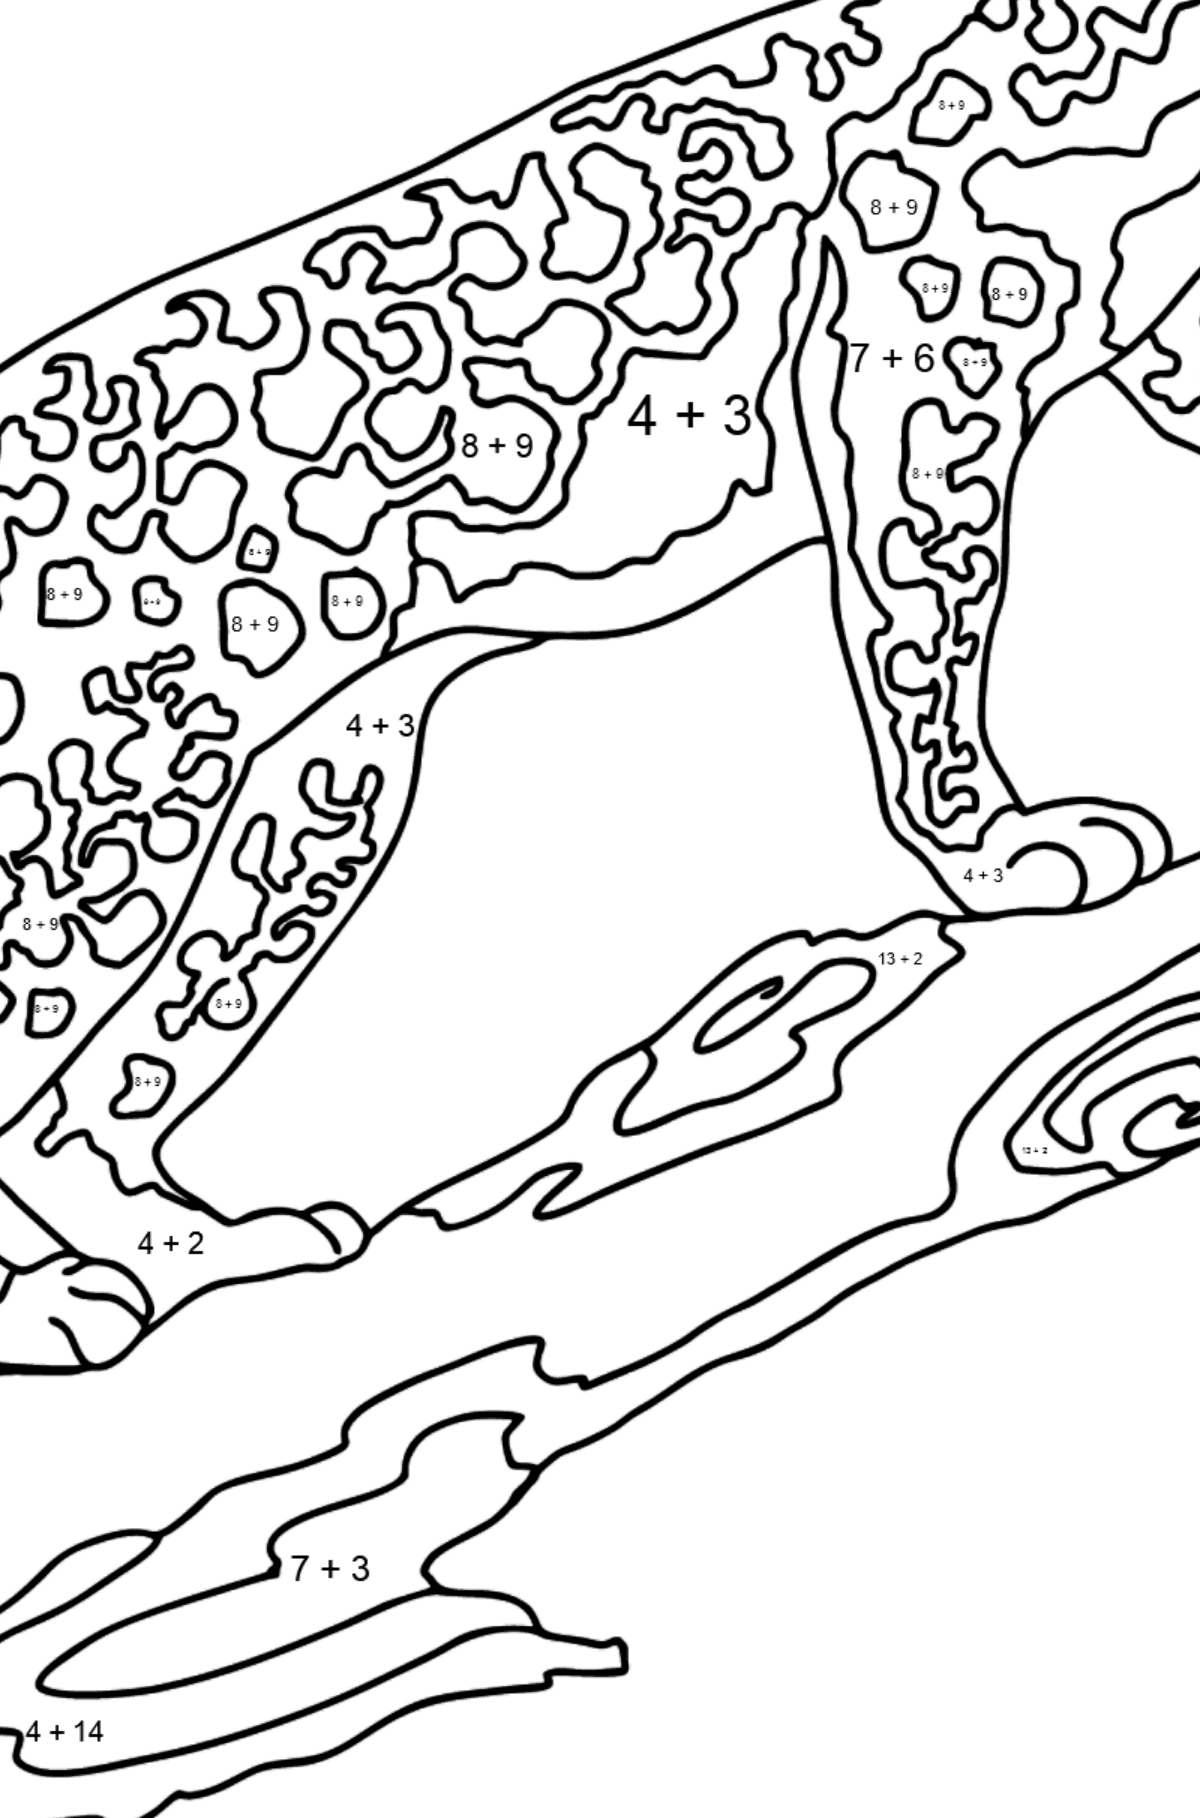 Coloring Page - A Leopard is on a Hunt - Math Coloring - Addition for Kids